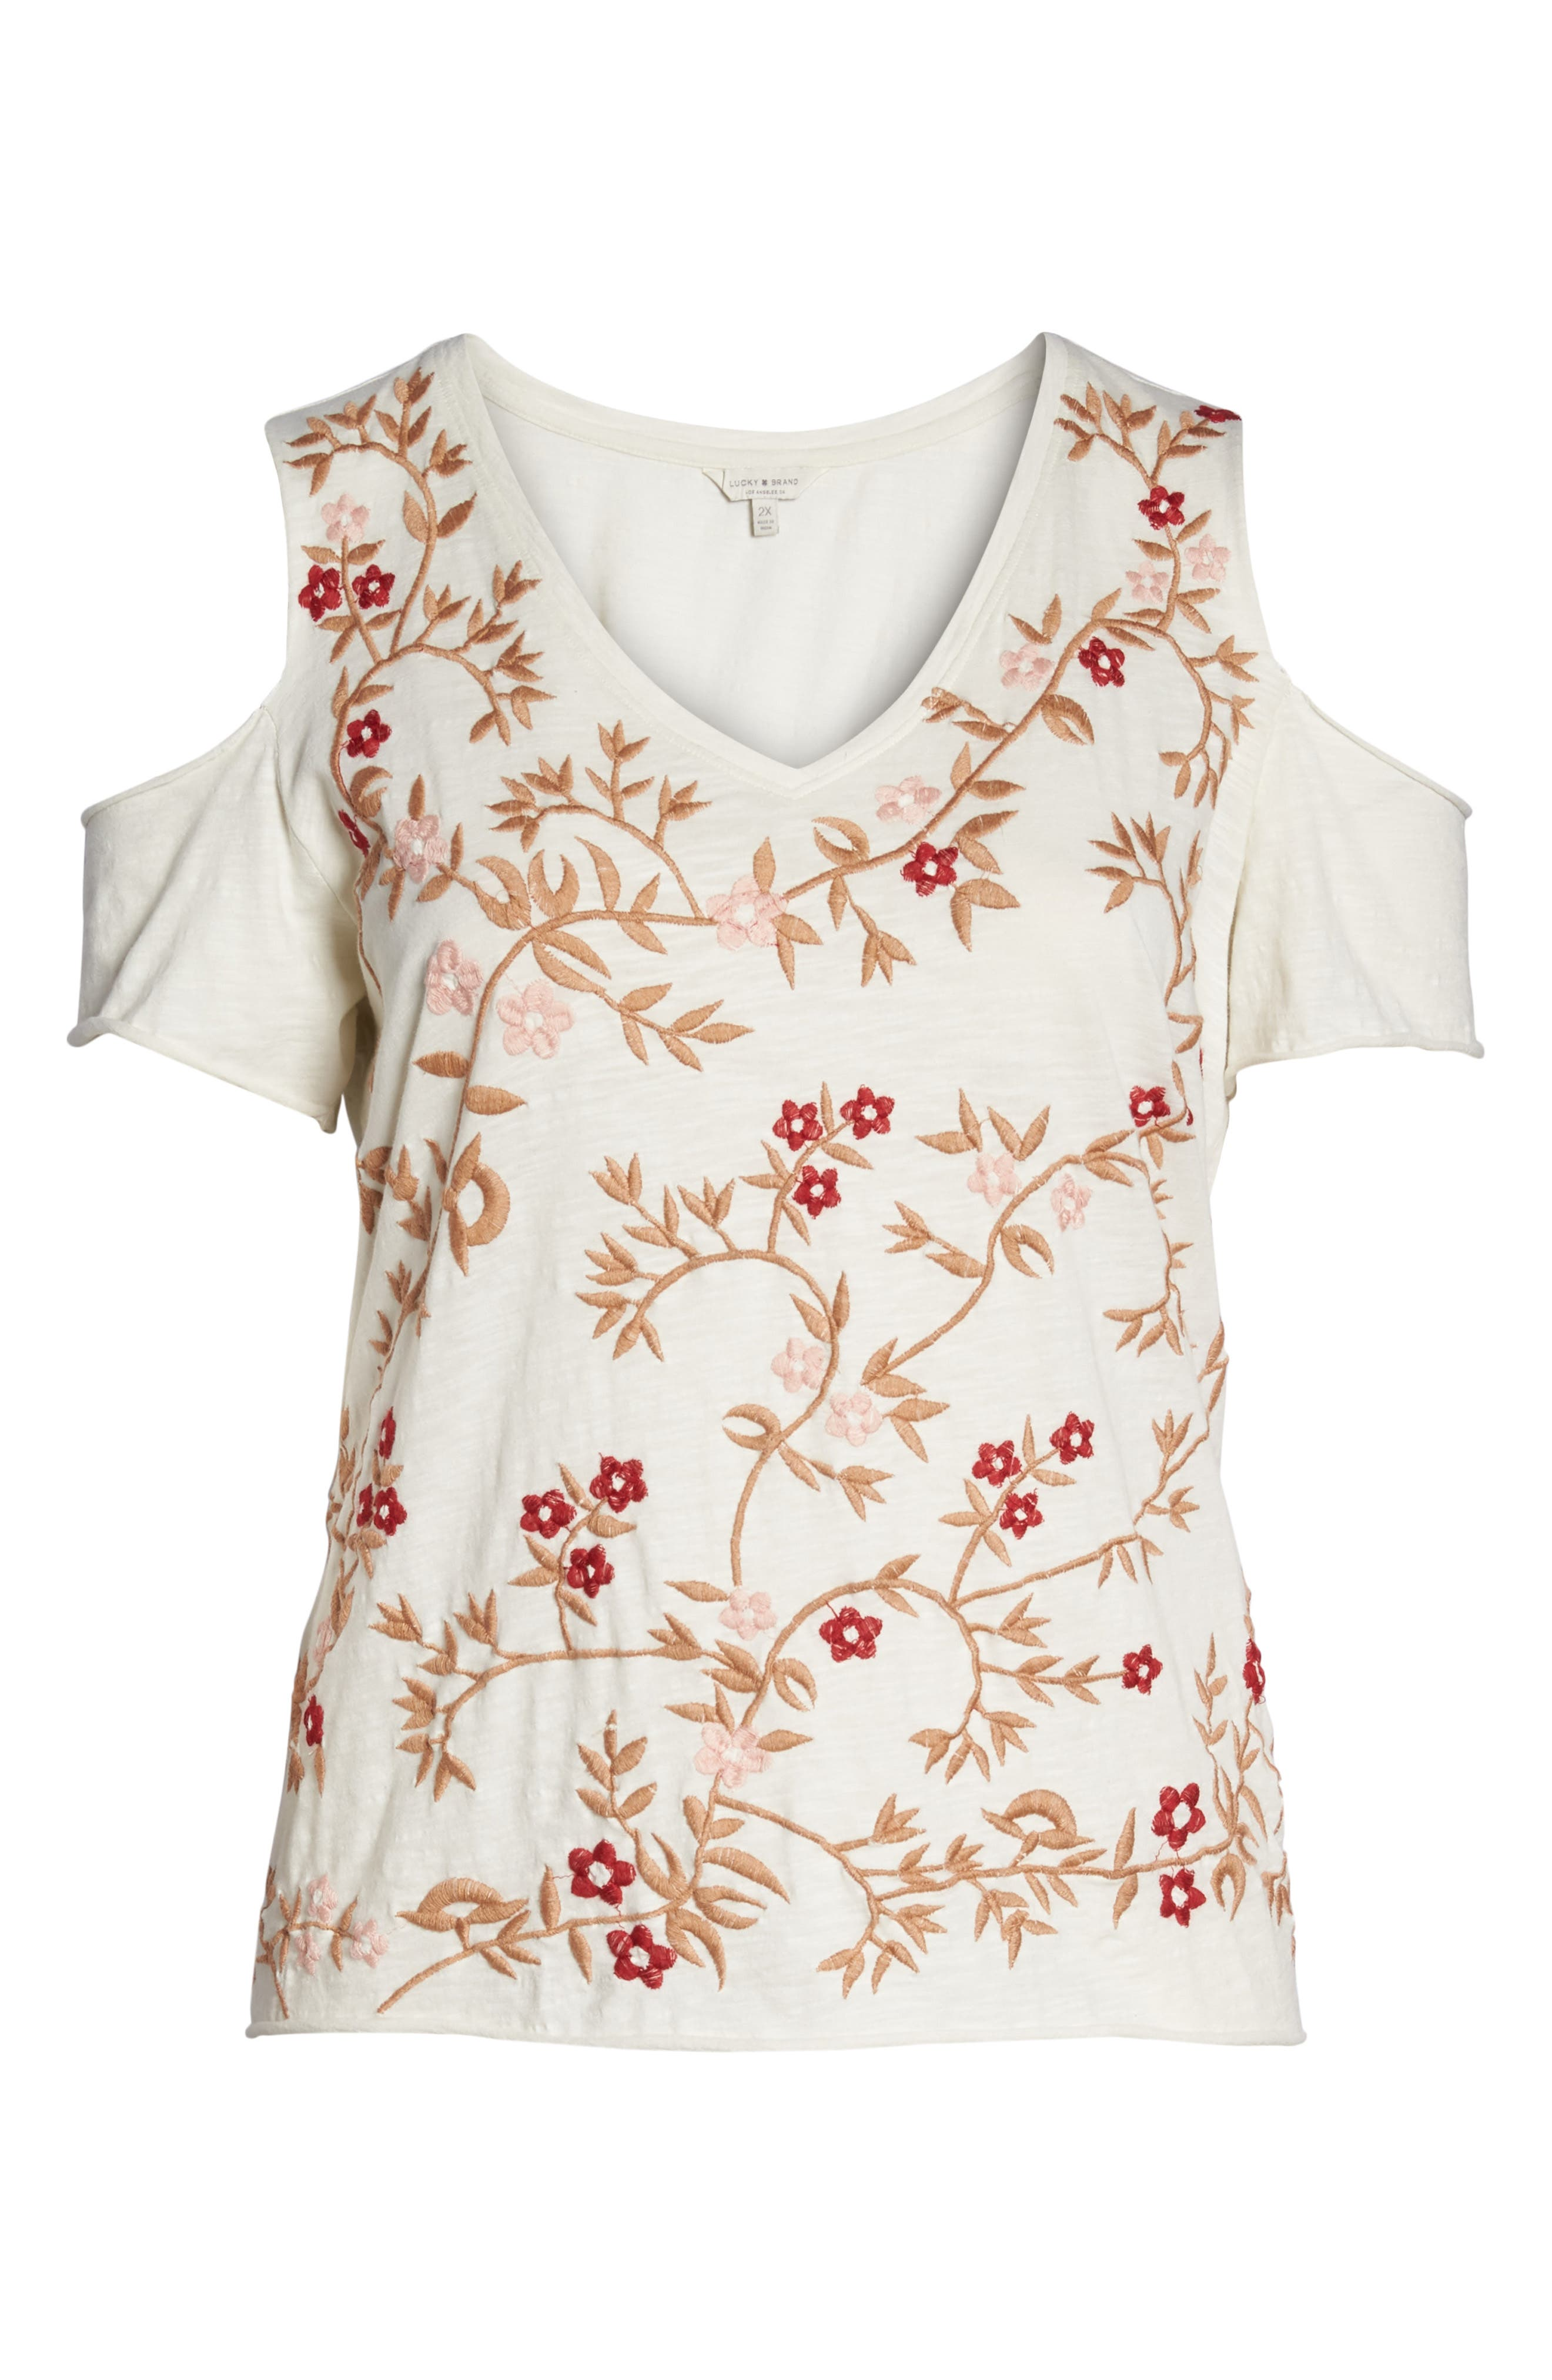 Floral Embroidered Tee,                             Alternate thumbnail 7, color,                             Pink Multi